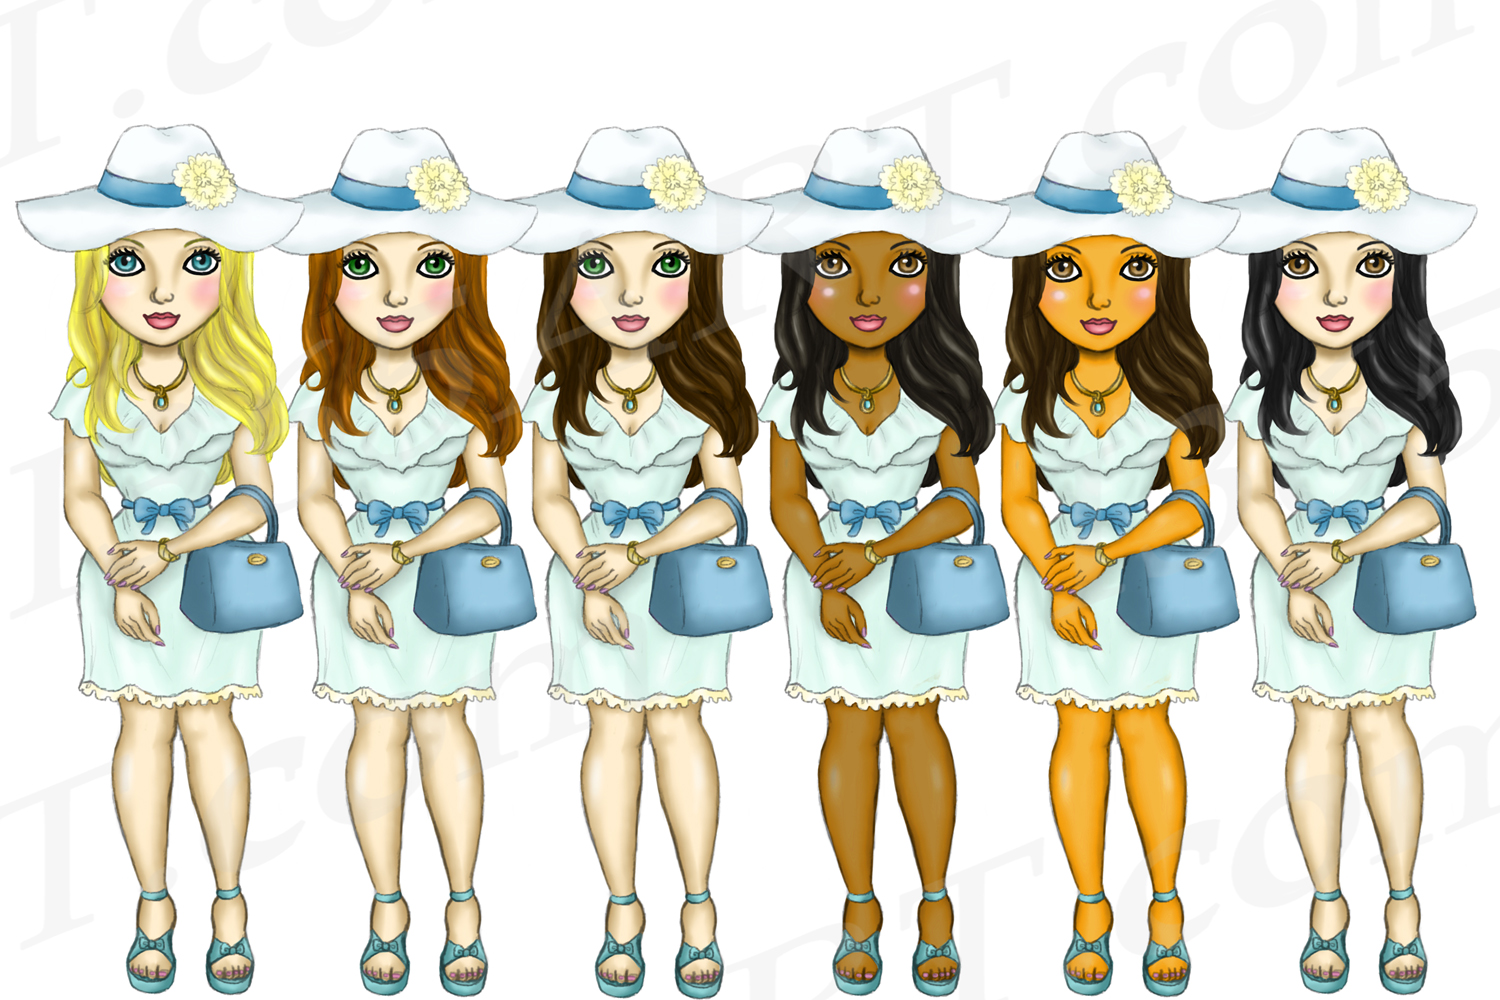 Easter Fashion Girls Clipart, Black Girl Dolls Fashion PNG example image 2